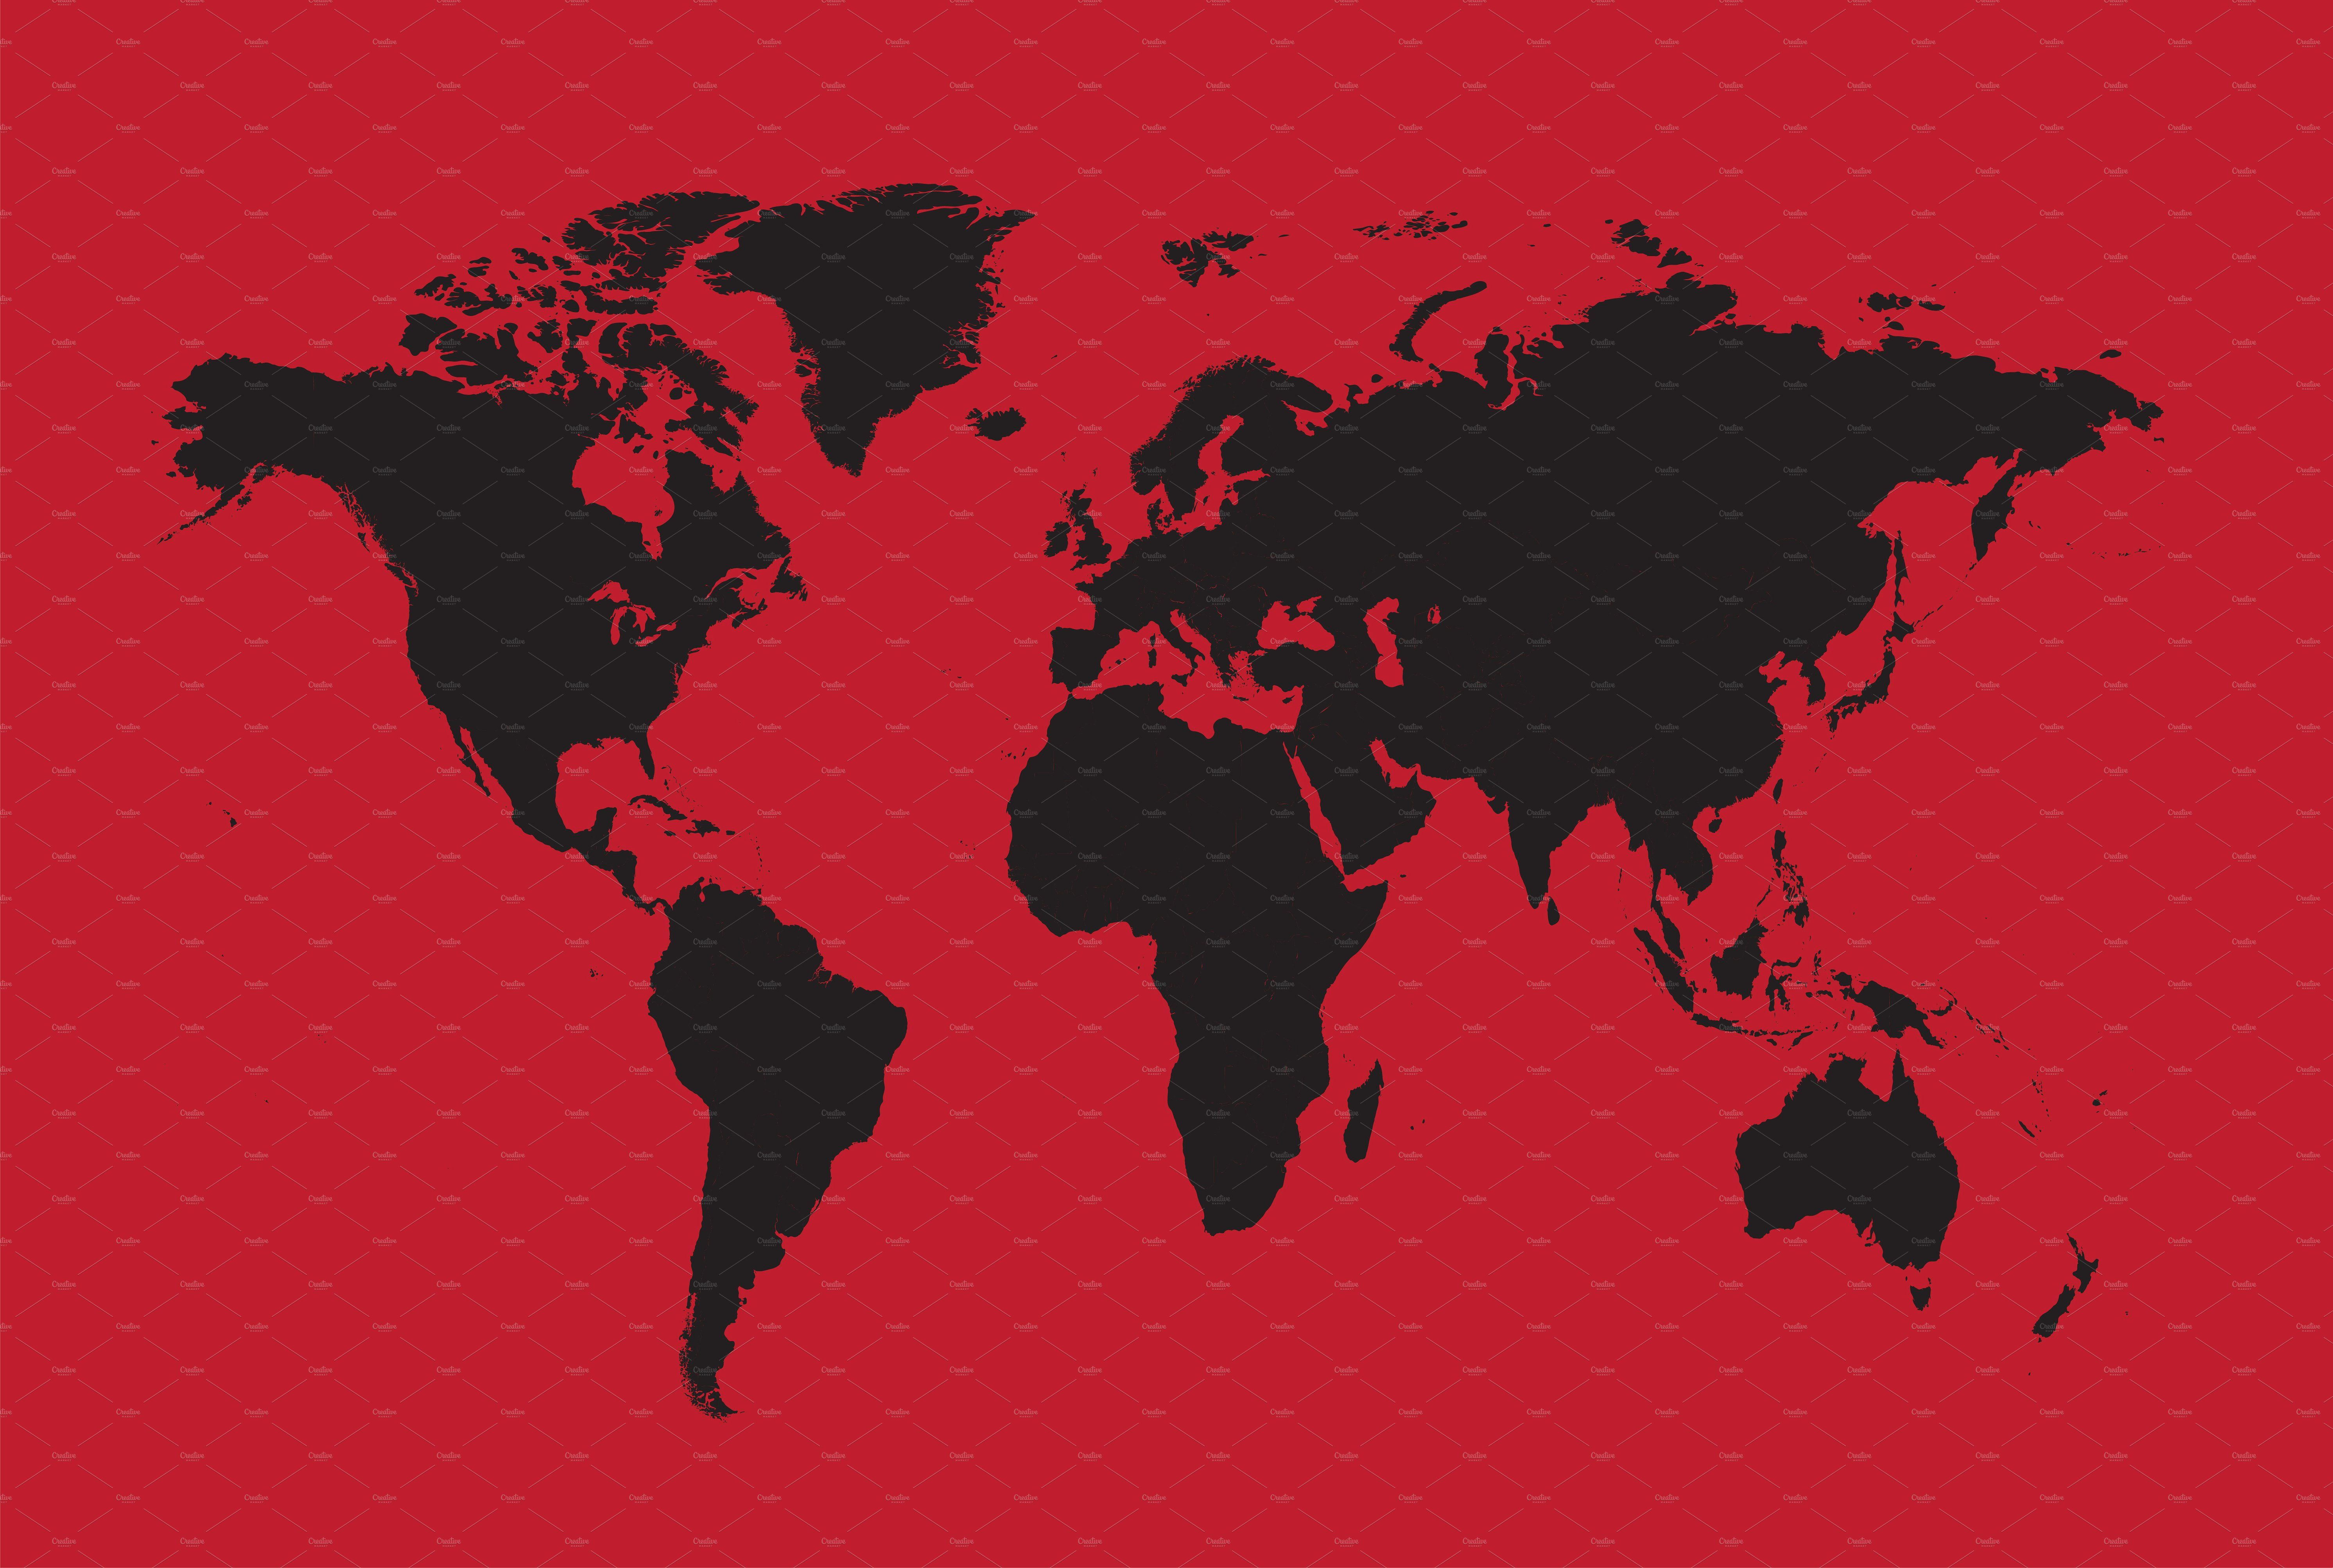 World Map Black With Red Background Red Background Map Wallpaper Detailed World Map